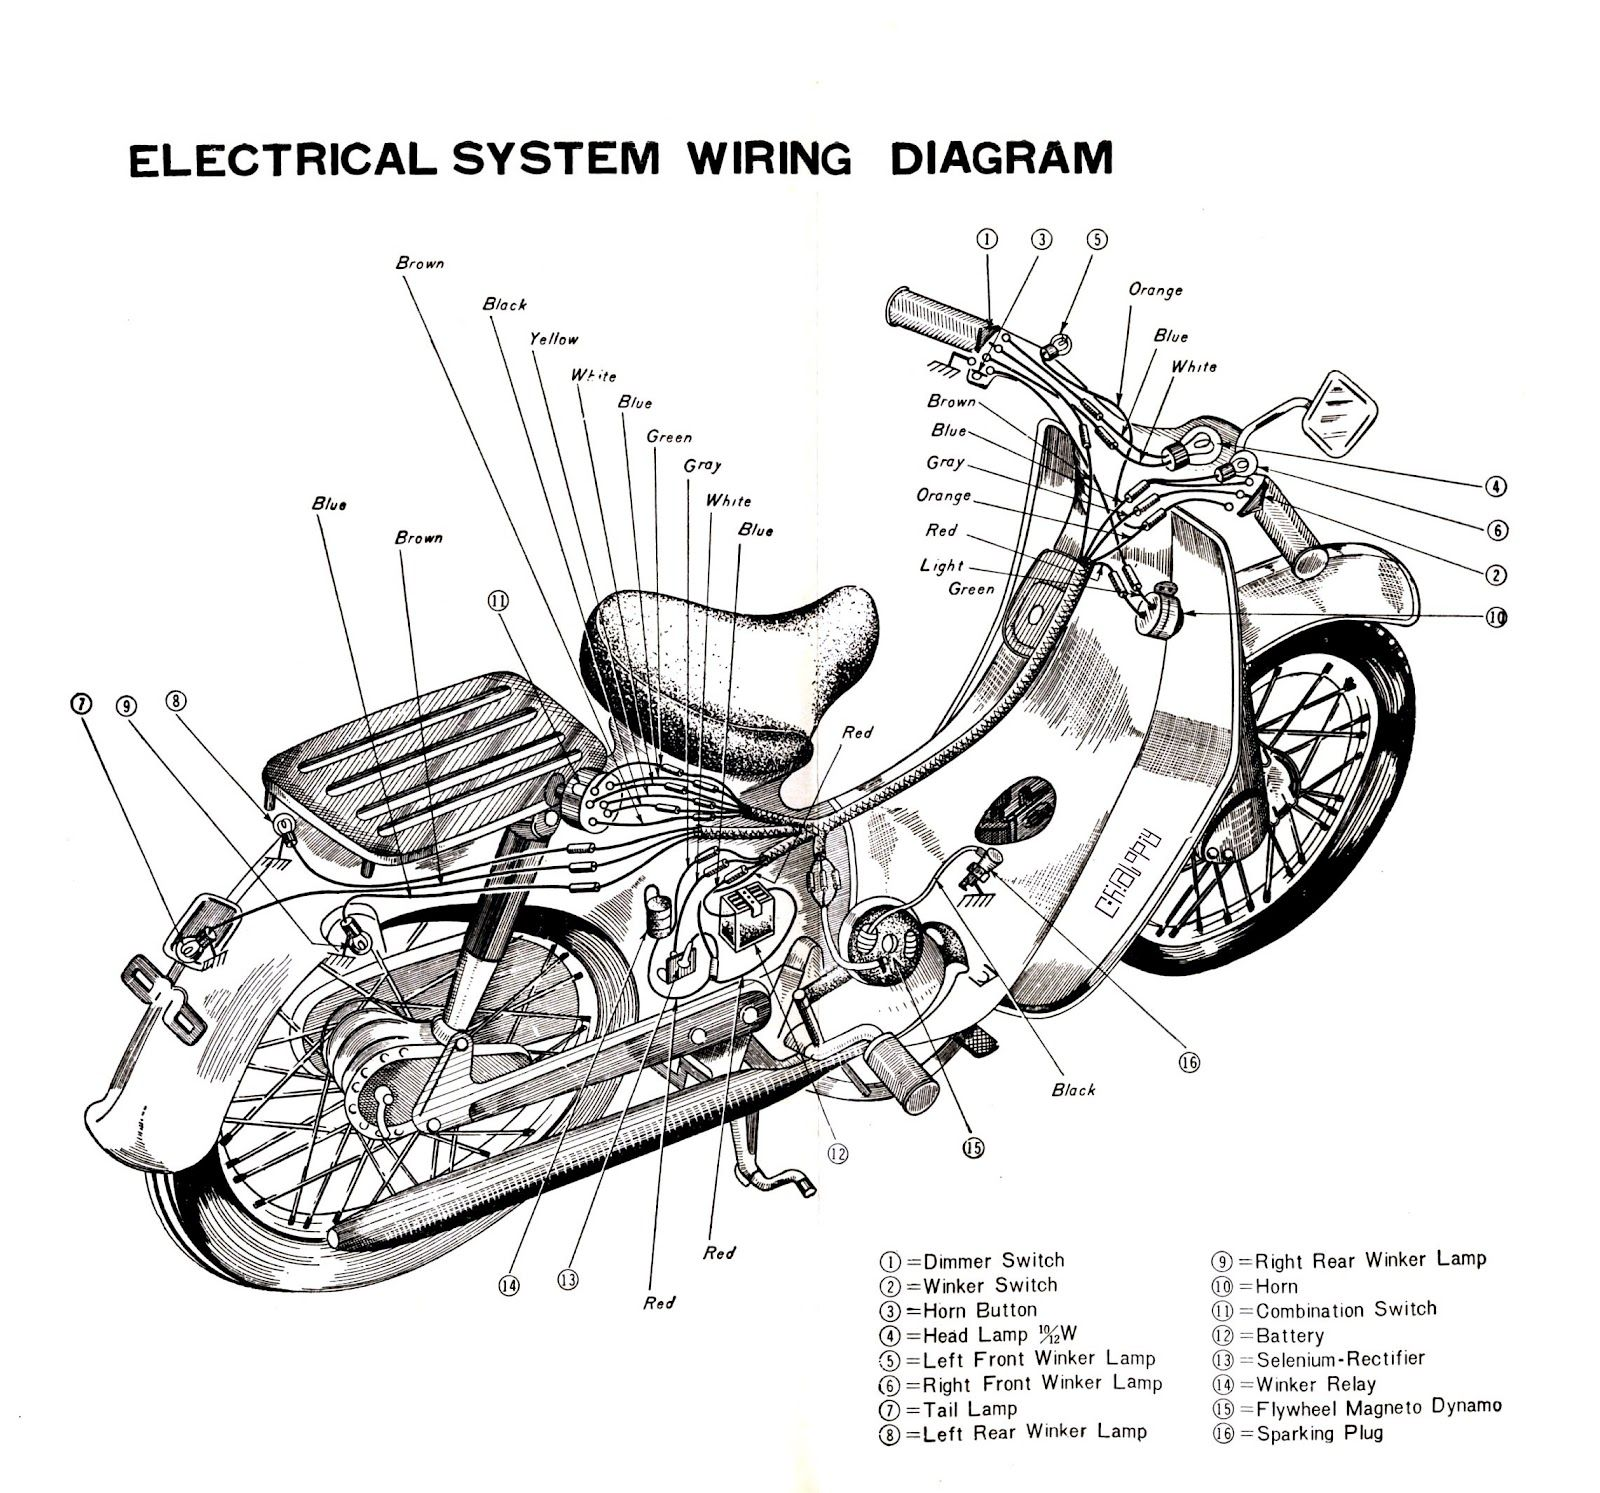 hight resolution of super club electric wiring diagram cub project pinterest honda rh pinterest com 49cc scooter moped honda moped 49cc